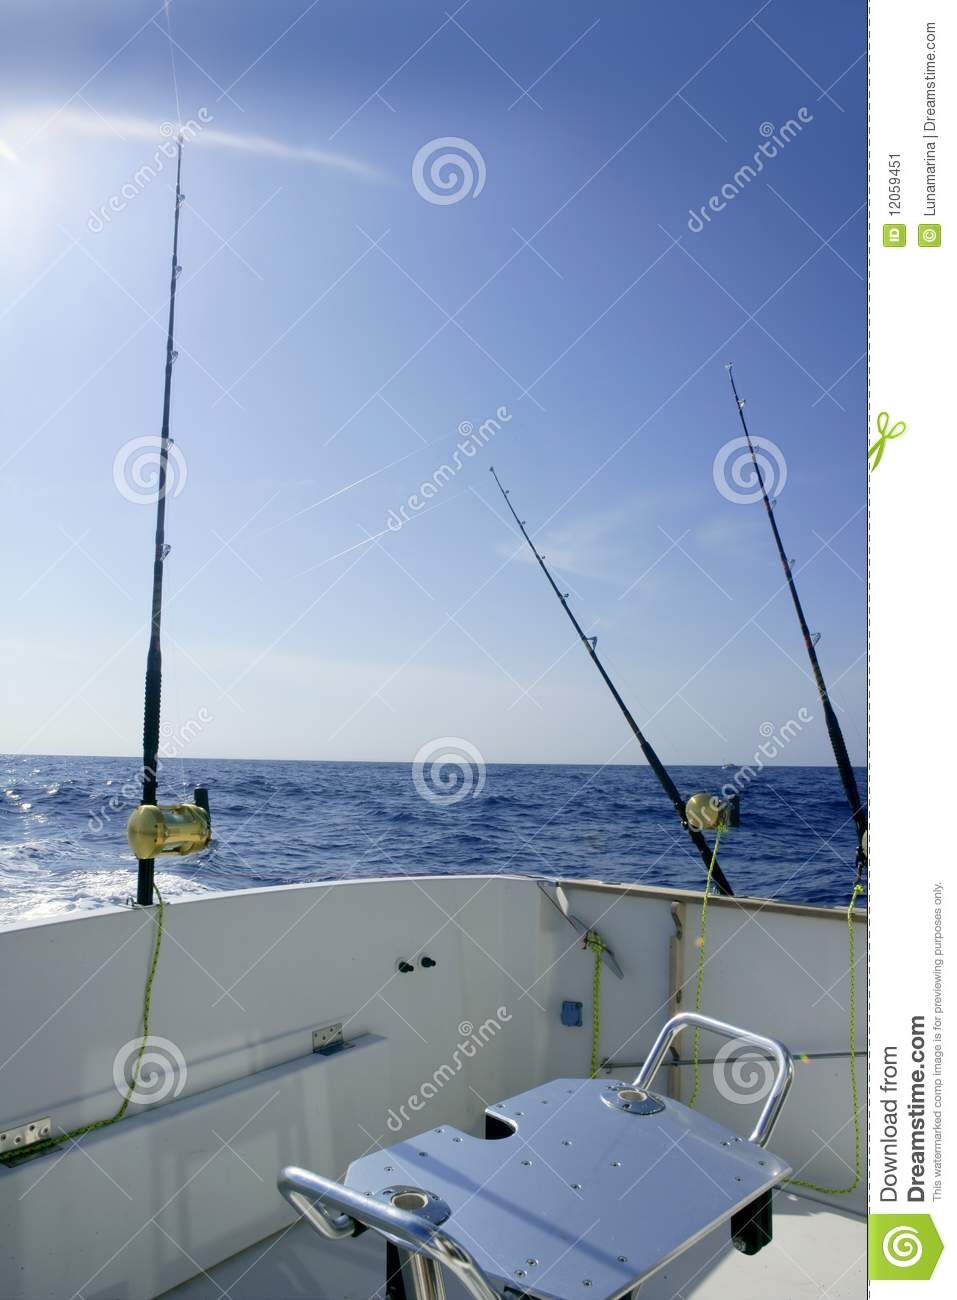 Angler boat big game fishing in saltwater stock image for Boat fishing games